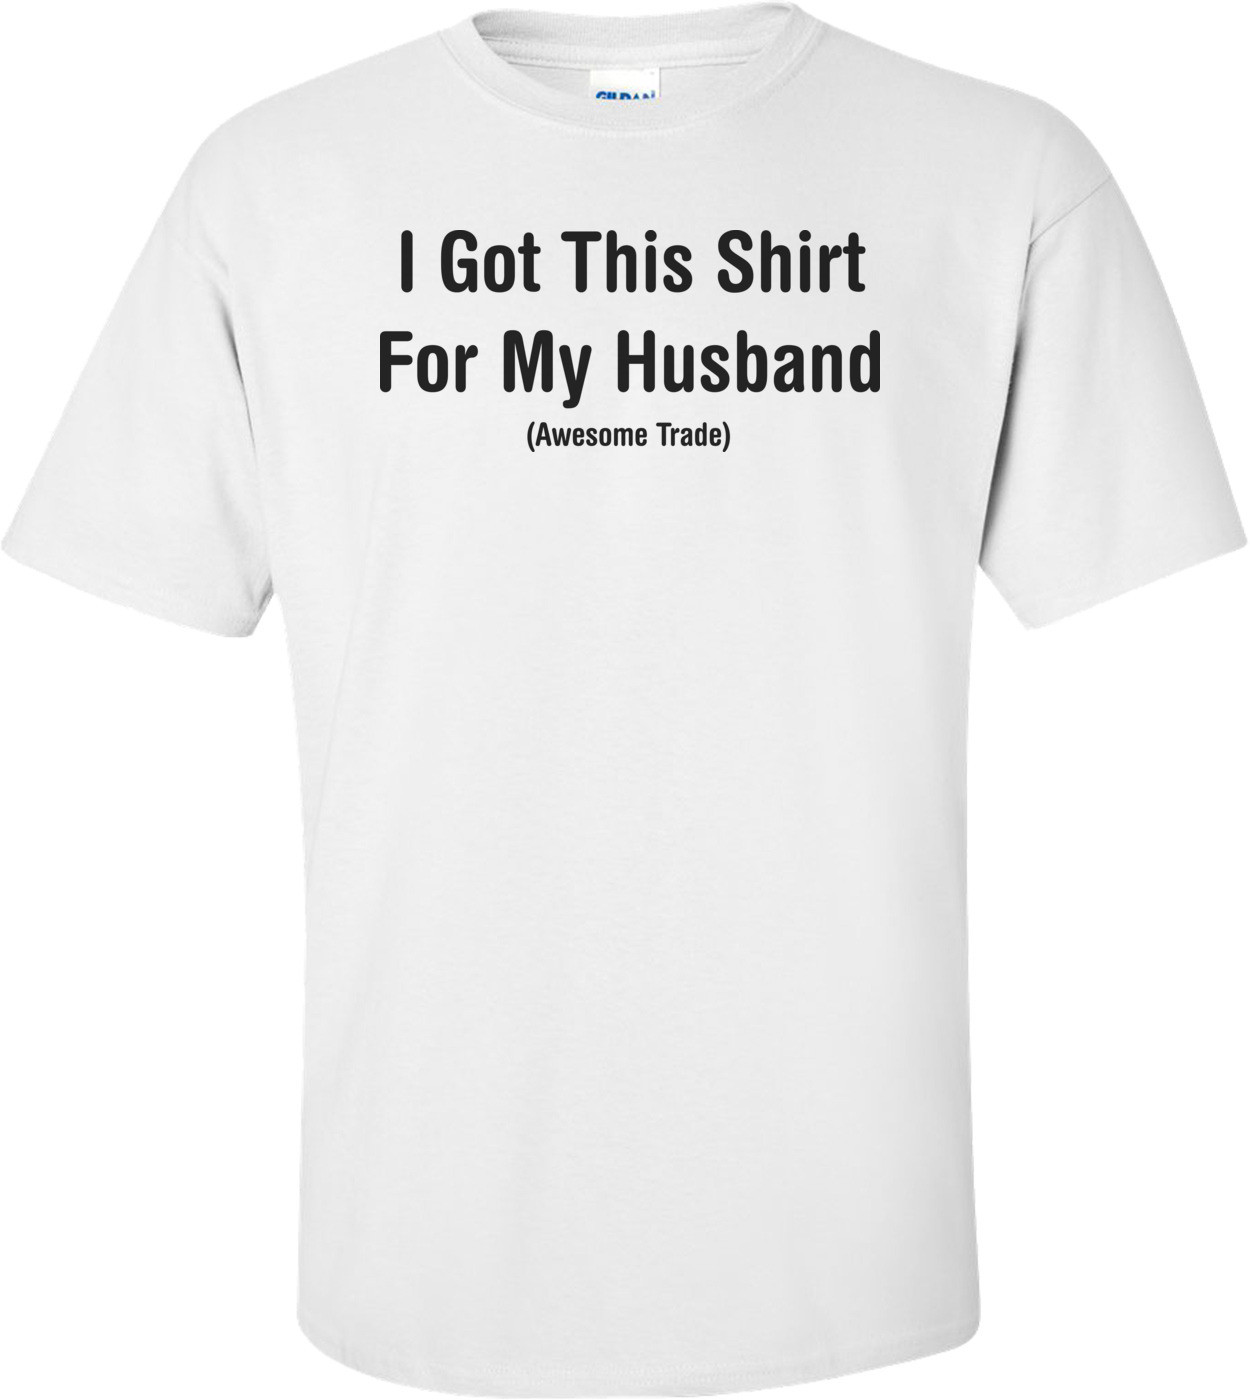 I Got This Shirt For My Husband Awesome Trade T-shirt